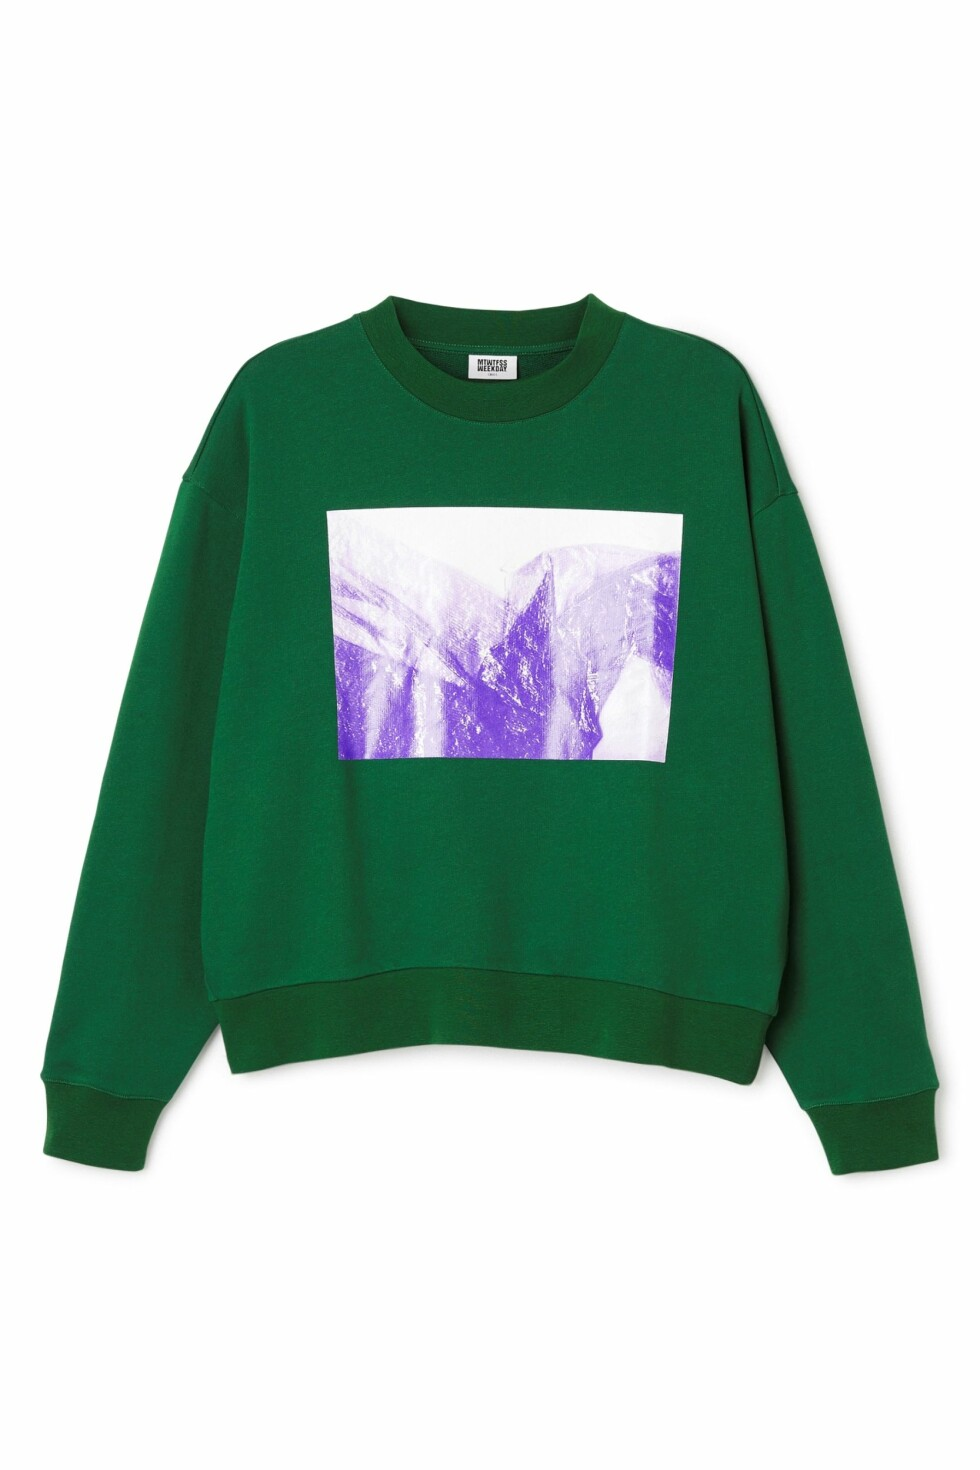 Genser fra Weekday | kr 400 | http://shop.weekday.com/se/Womens_shop/New_arrivals/Huge_Cropped_Printed_Sweater/1342358-9203253.1?image=1328240#c-49929